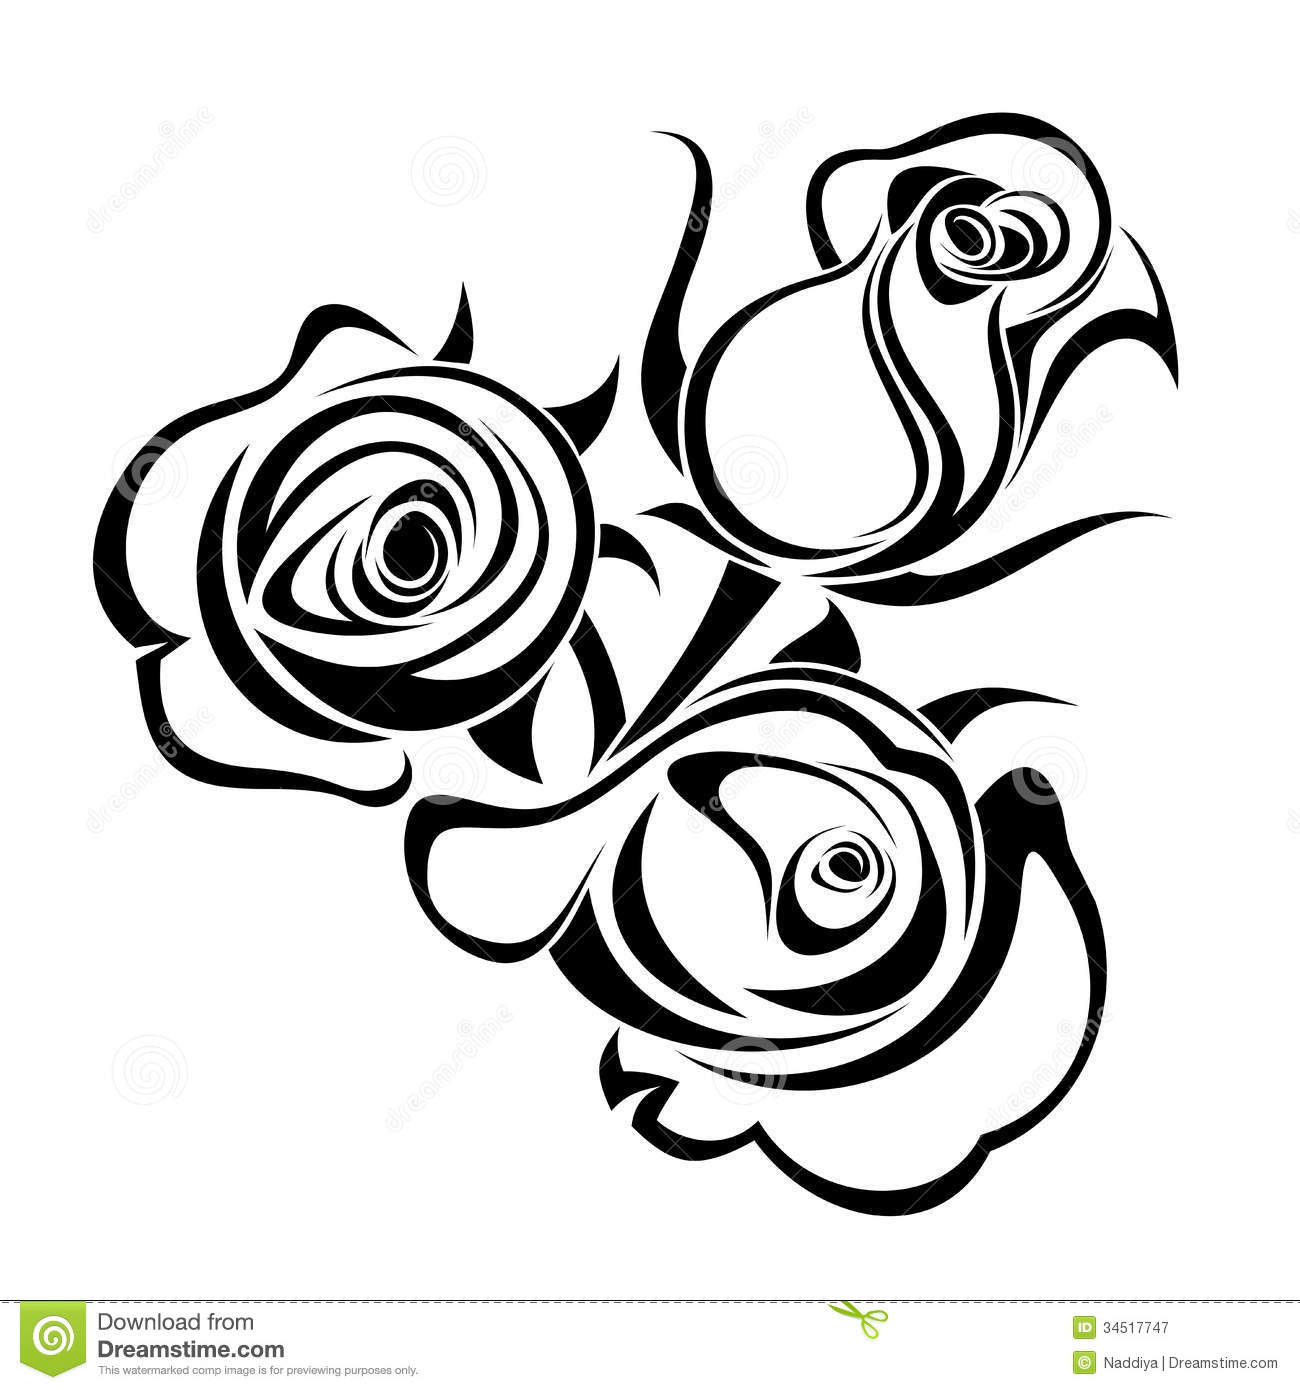 clipart roses black and white - photo #19